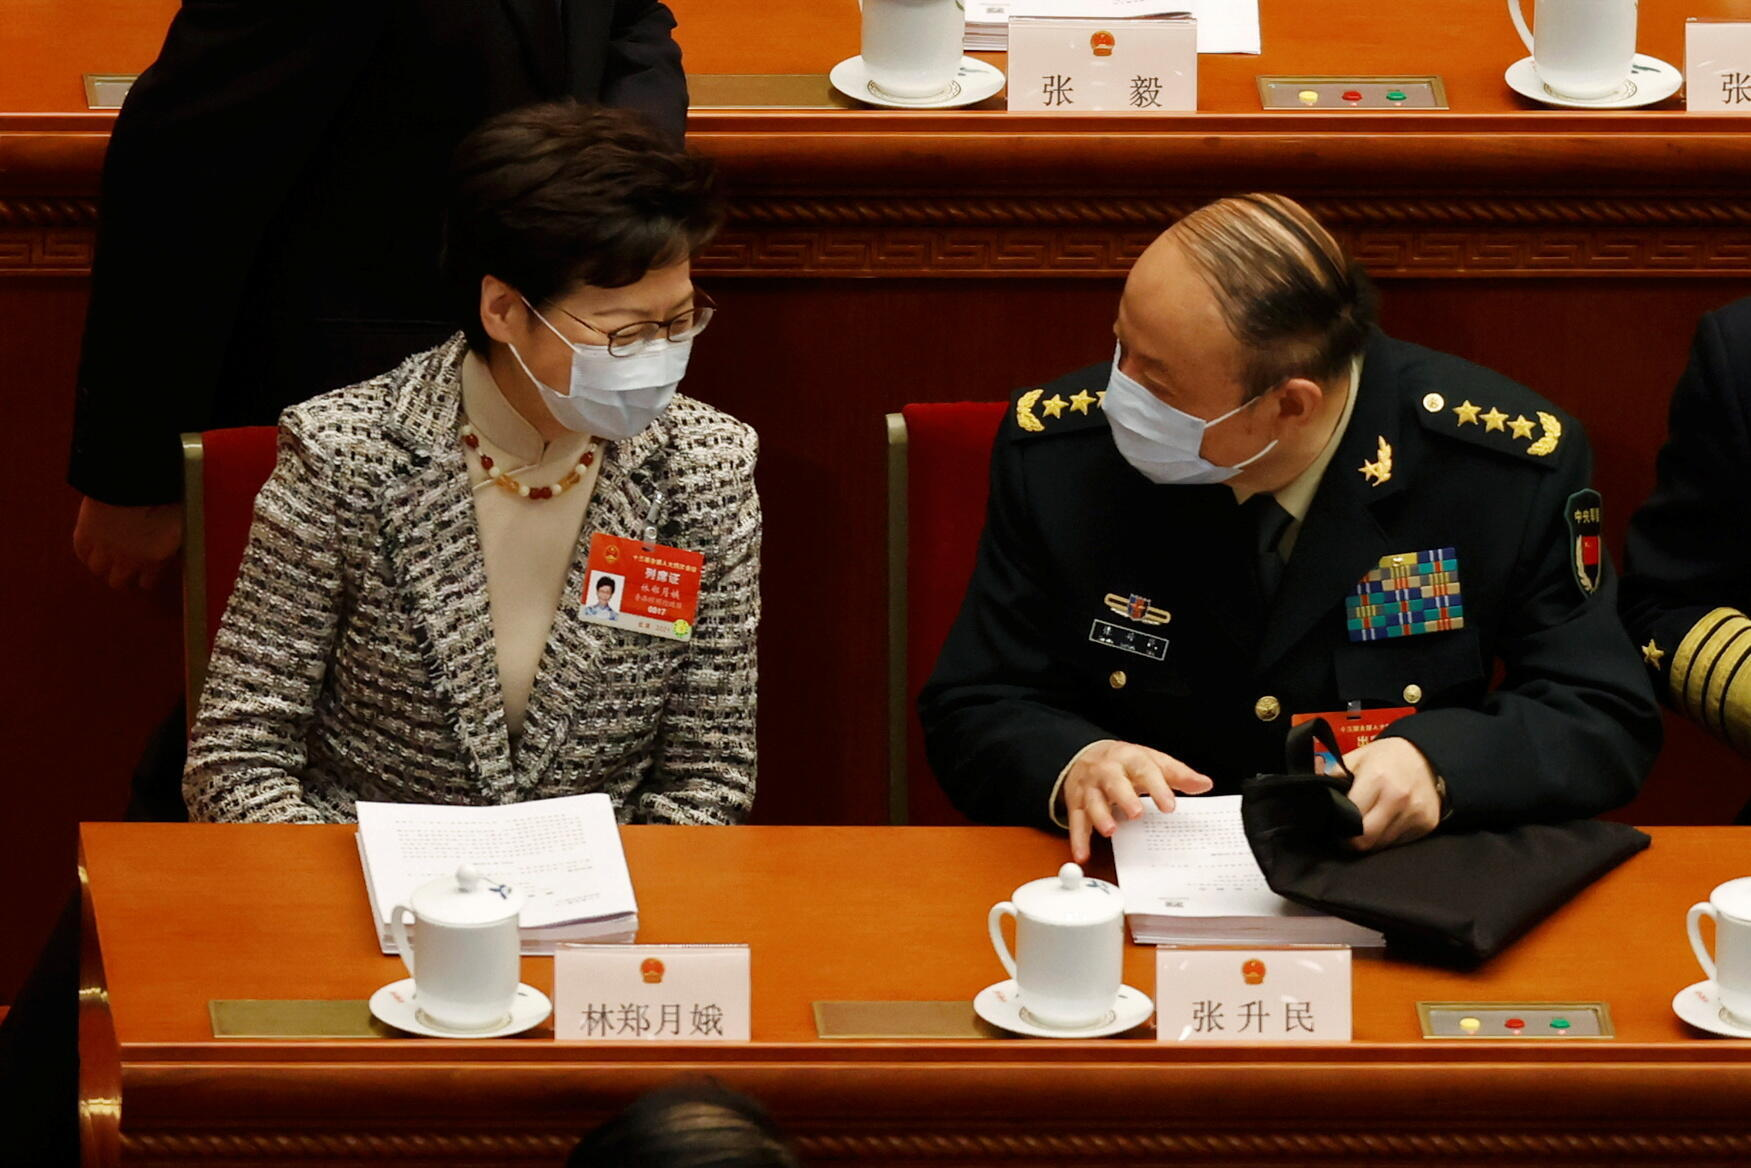 Hong Kong Chief Executive Carrie Lam chats with a military delegate before the opening session of the National People's Congress (NPC) at the Great Hall of the People in Beijing, China March 5, 2021